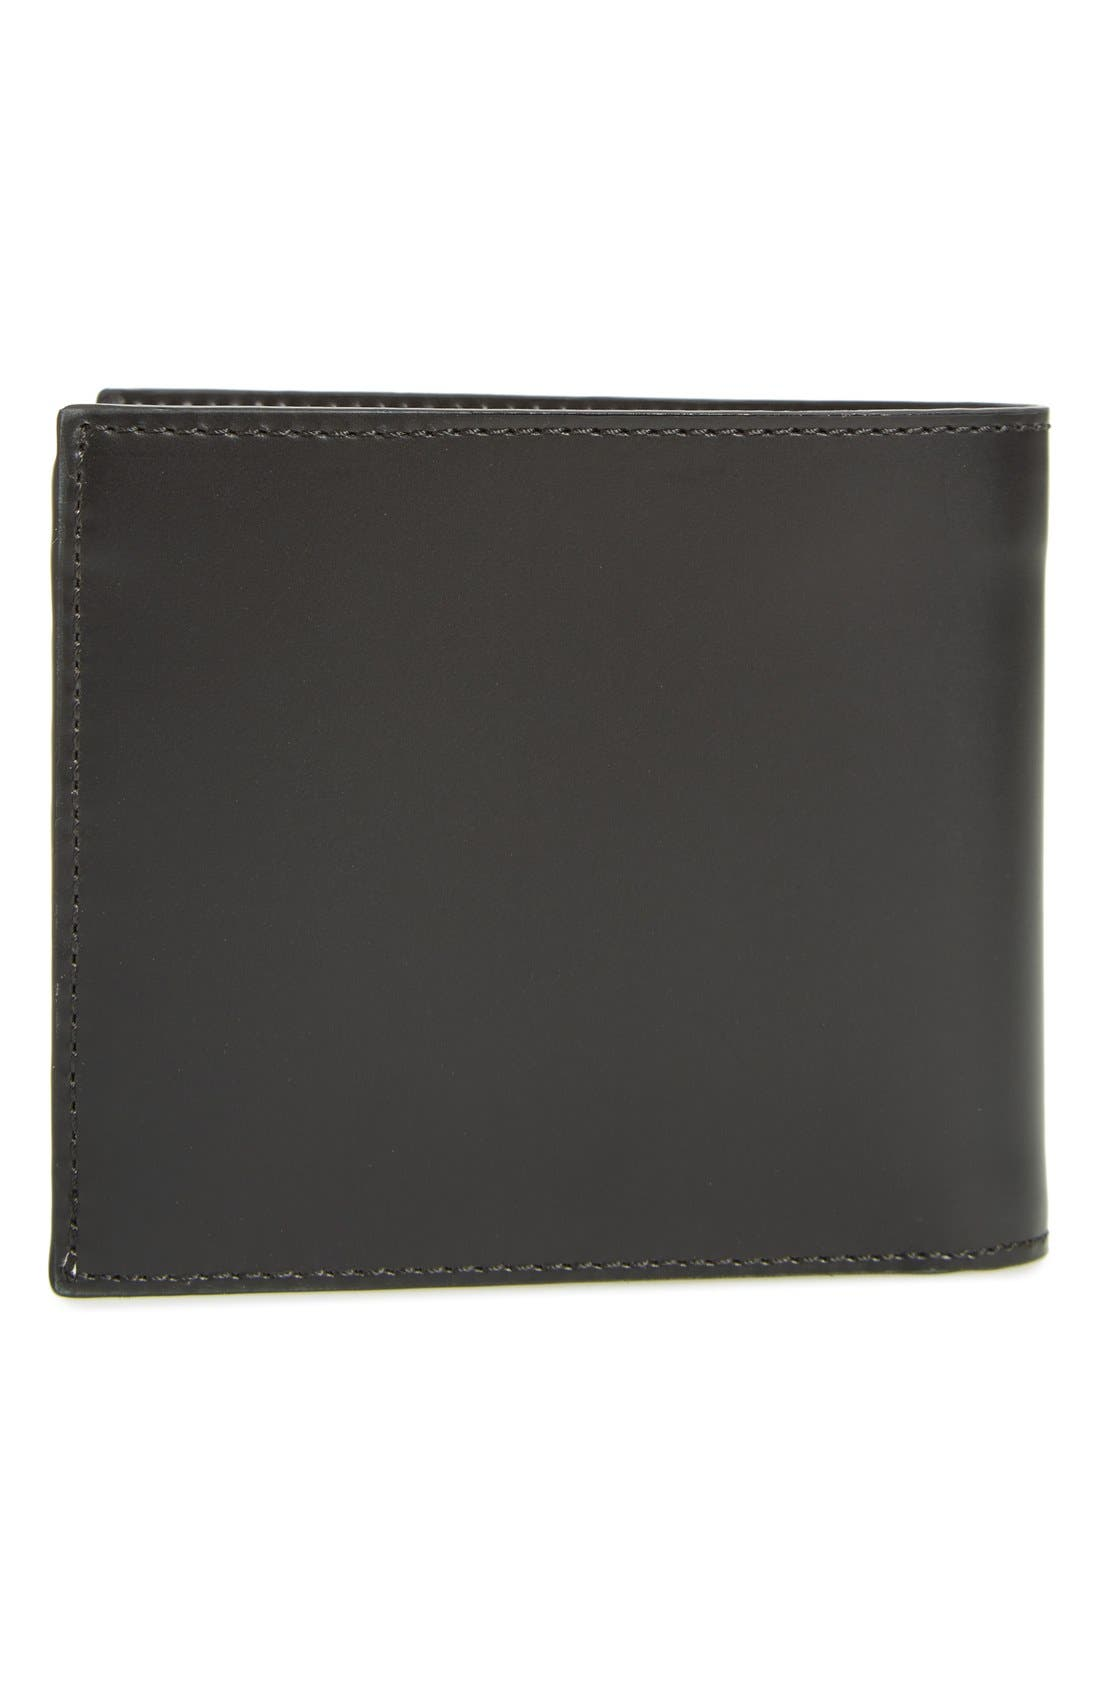 Alternate Image 3  - Paul Smith Leather Wallet